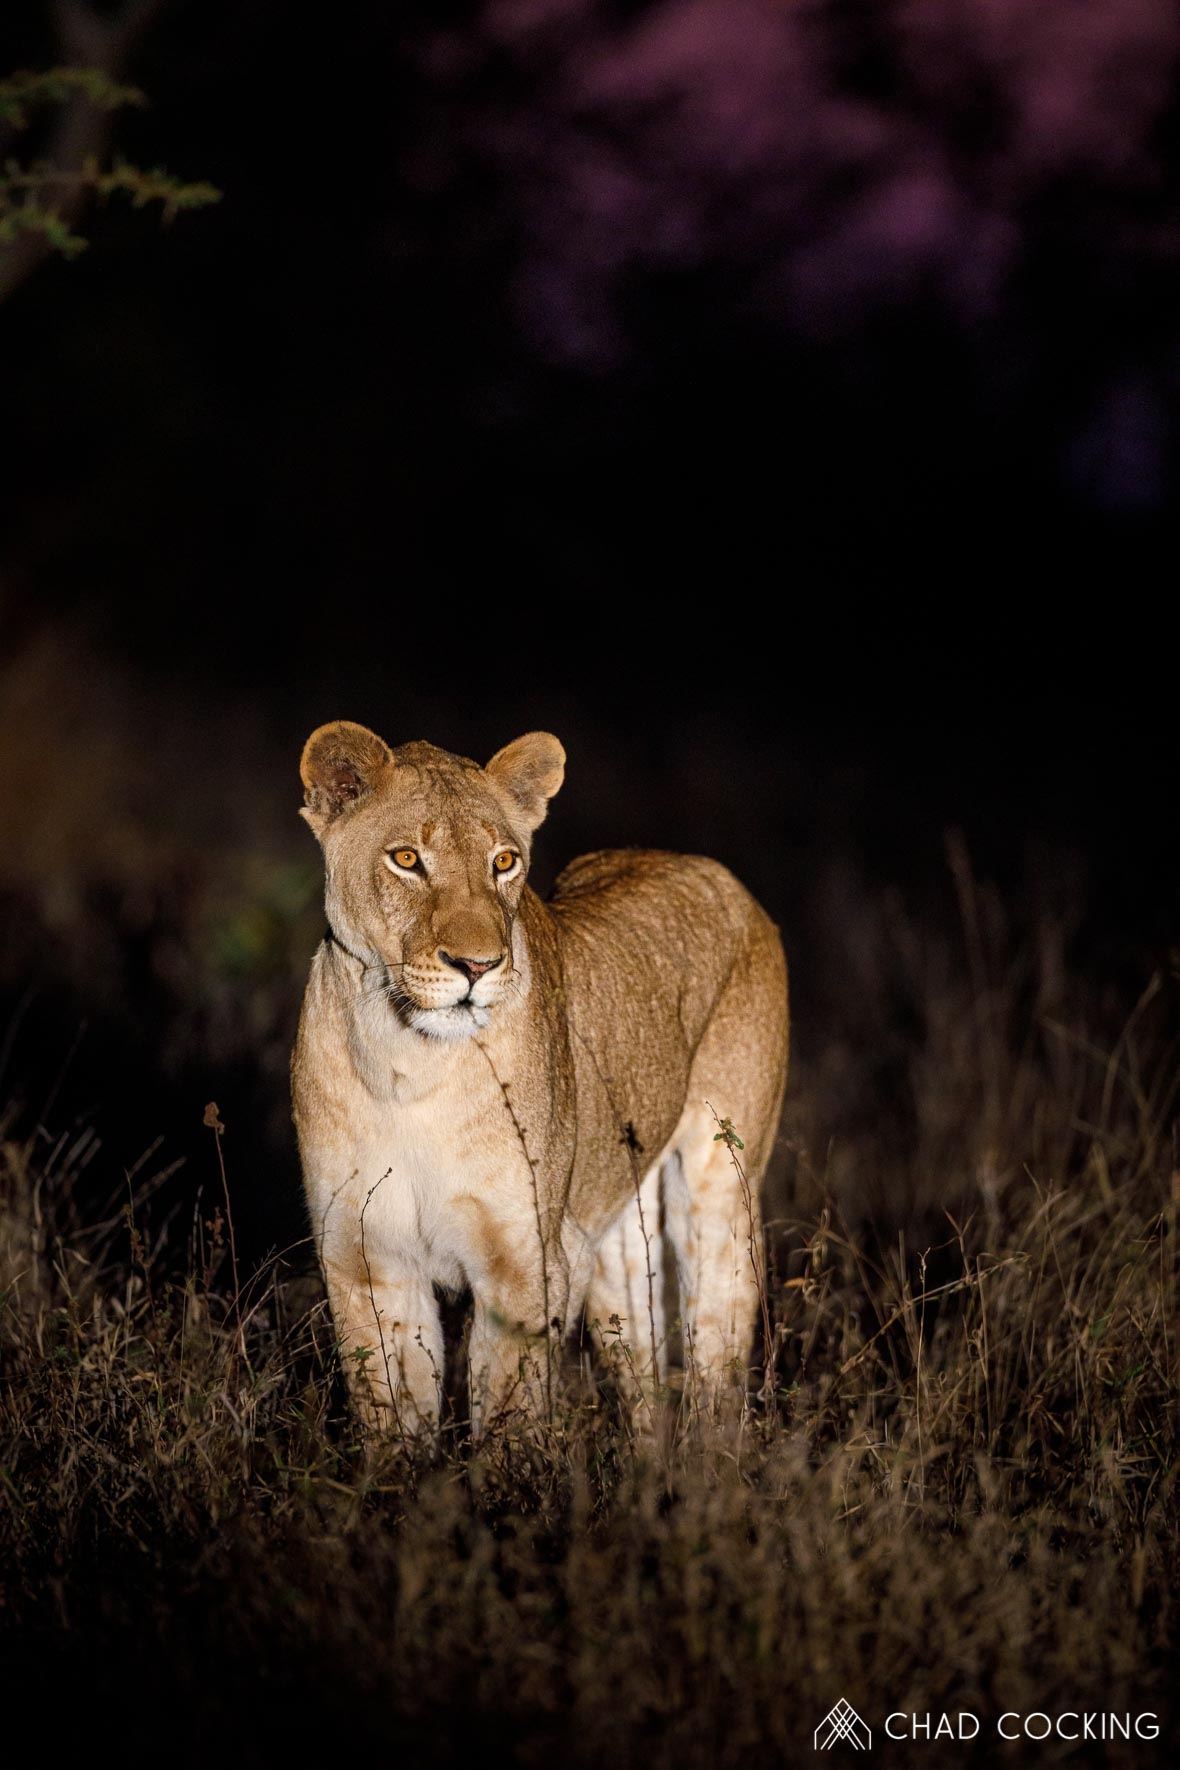 Photo credit: Chad Cocking - Female Lioness at night at Tanda Tula in the Timbavati Game Reserve, South Africa.